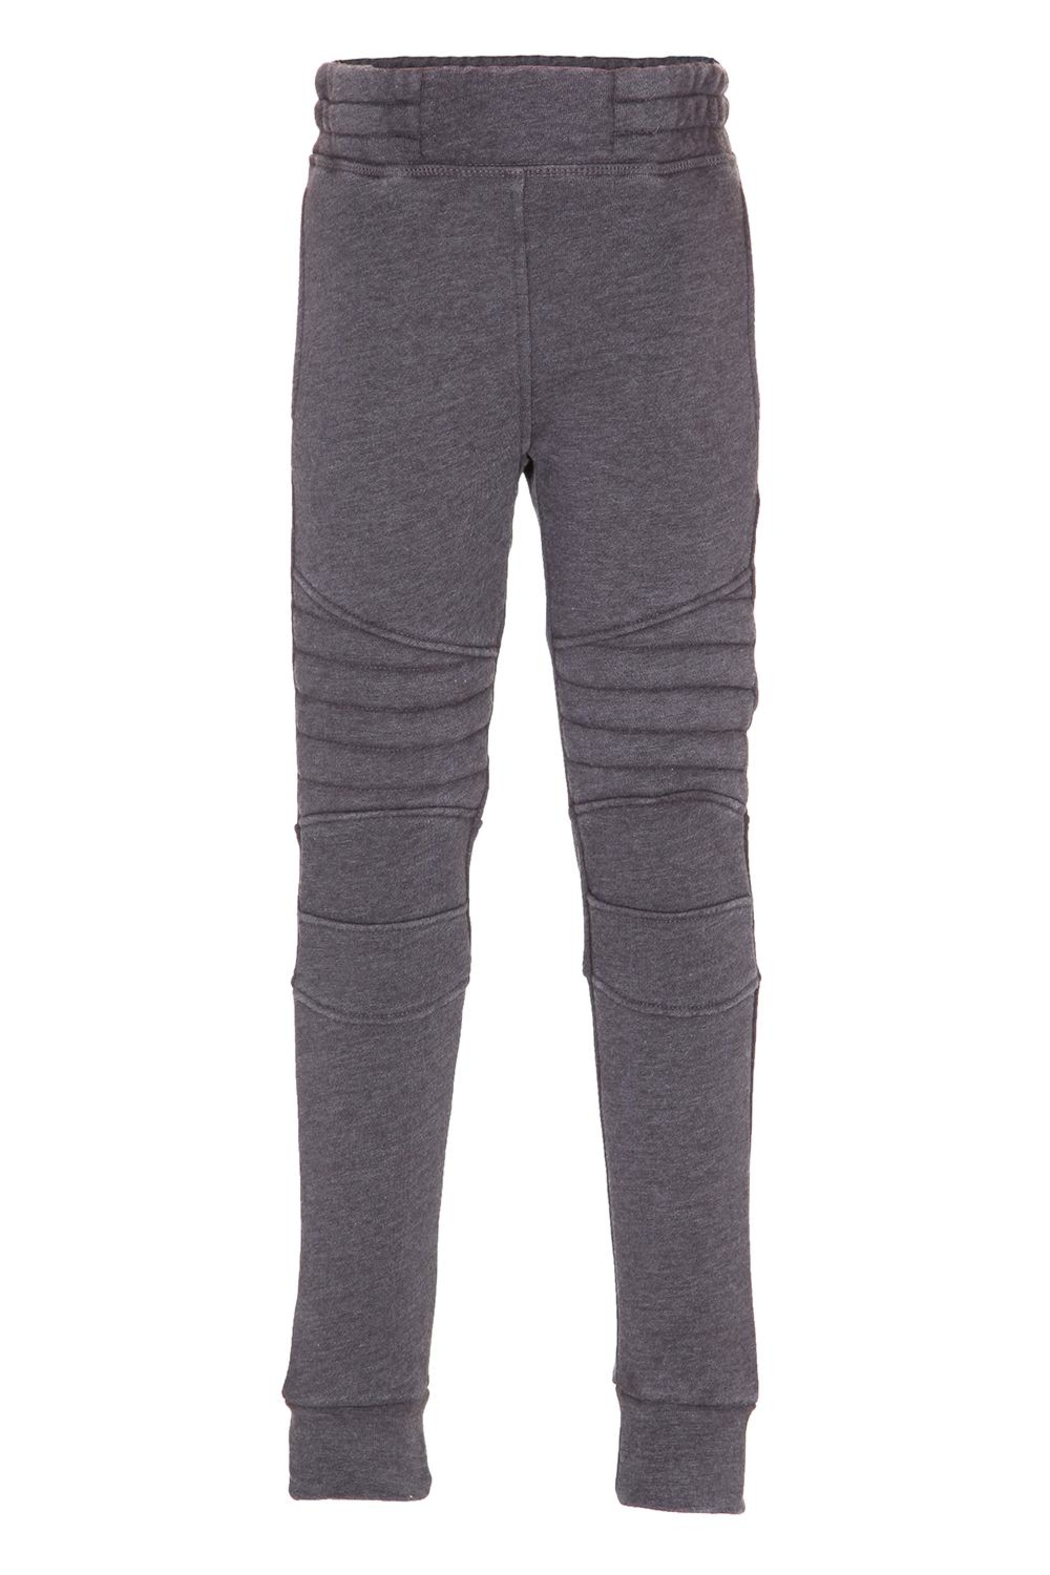 Molo Axl Patchwork Pants - Front Full Image